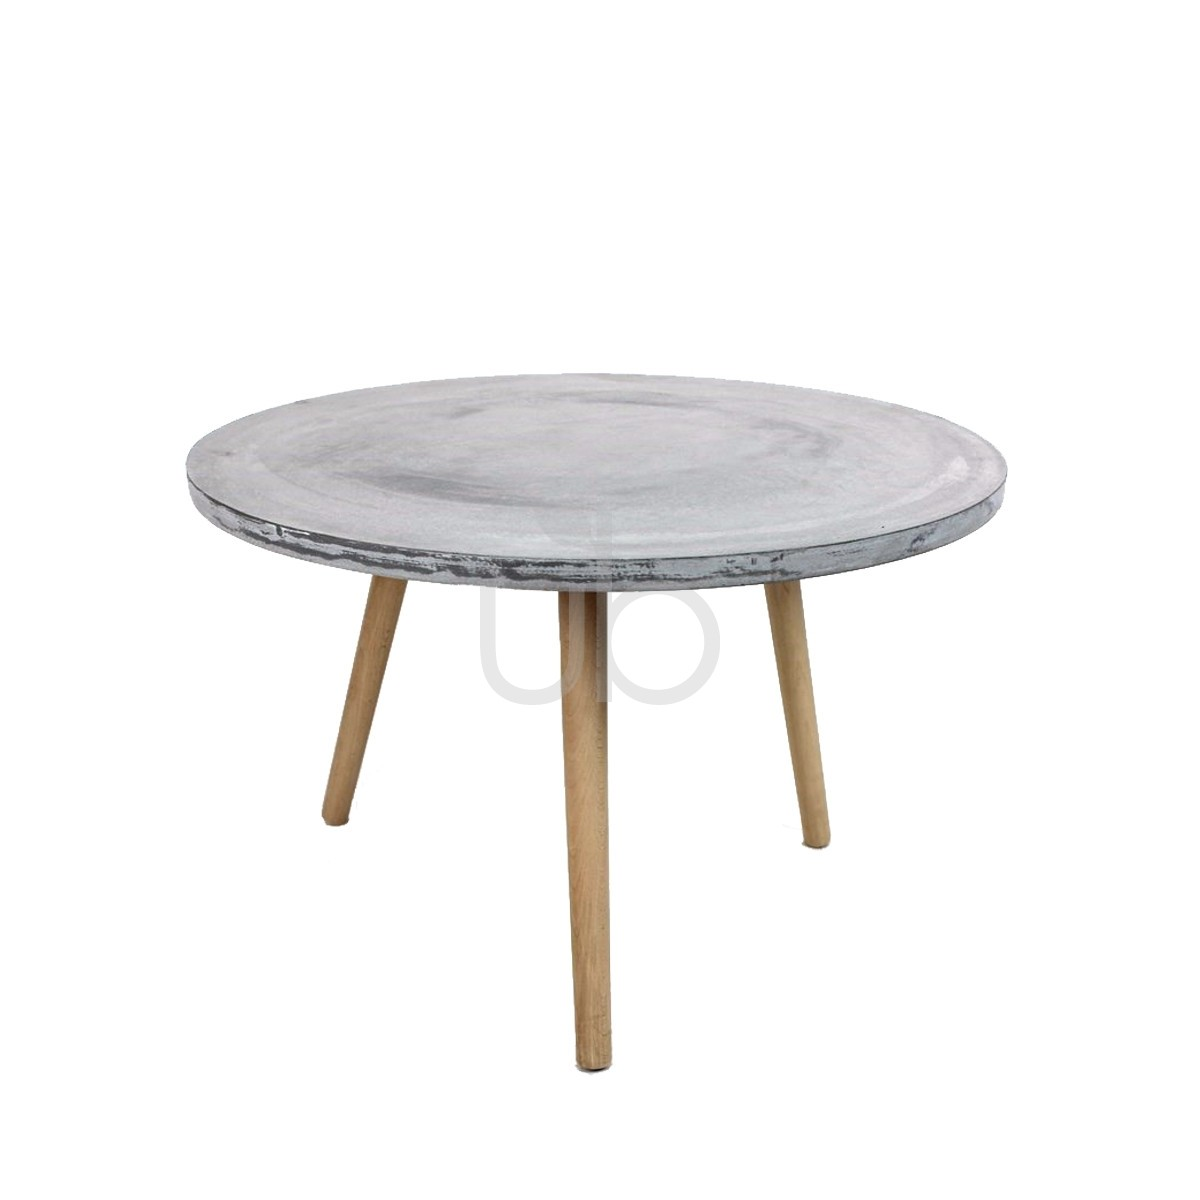 raw concrete round side table outdoor furniture the xxlarge grey grc pier one dining room tables wood and glass nest half accent small black martin home office baroque rustic